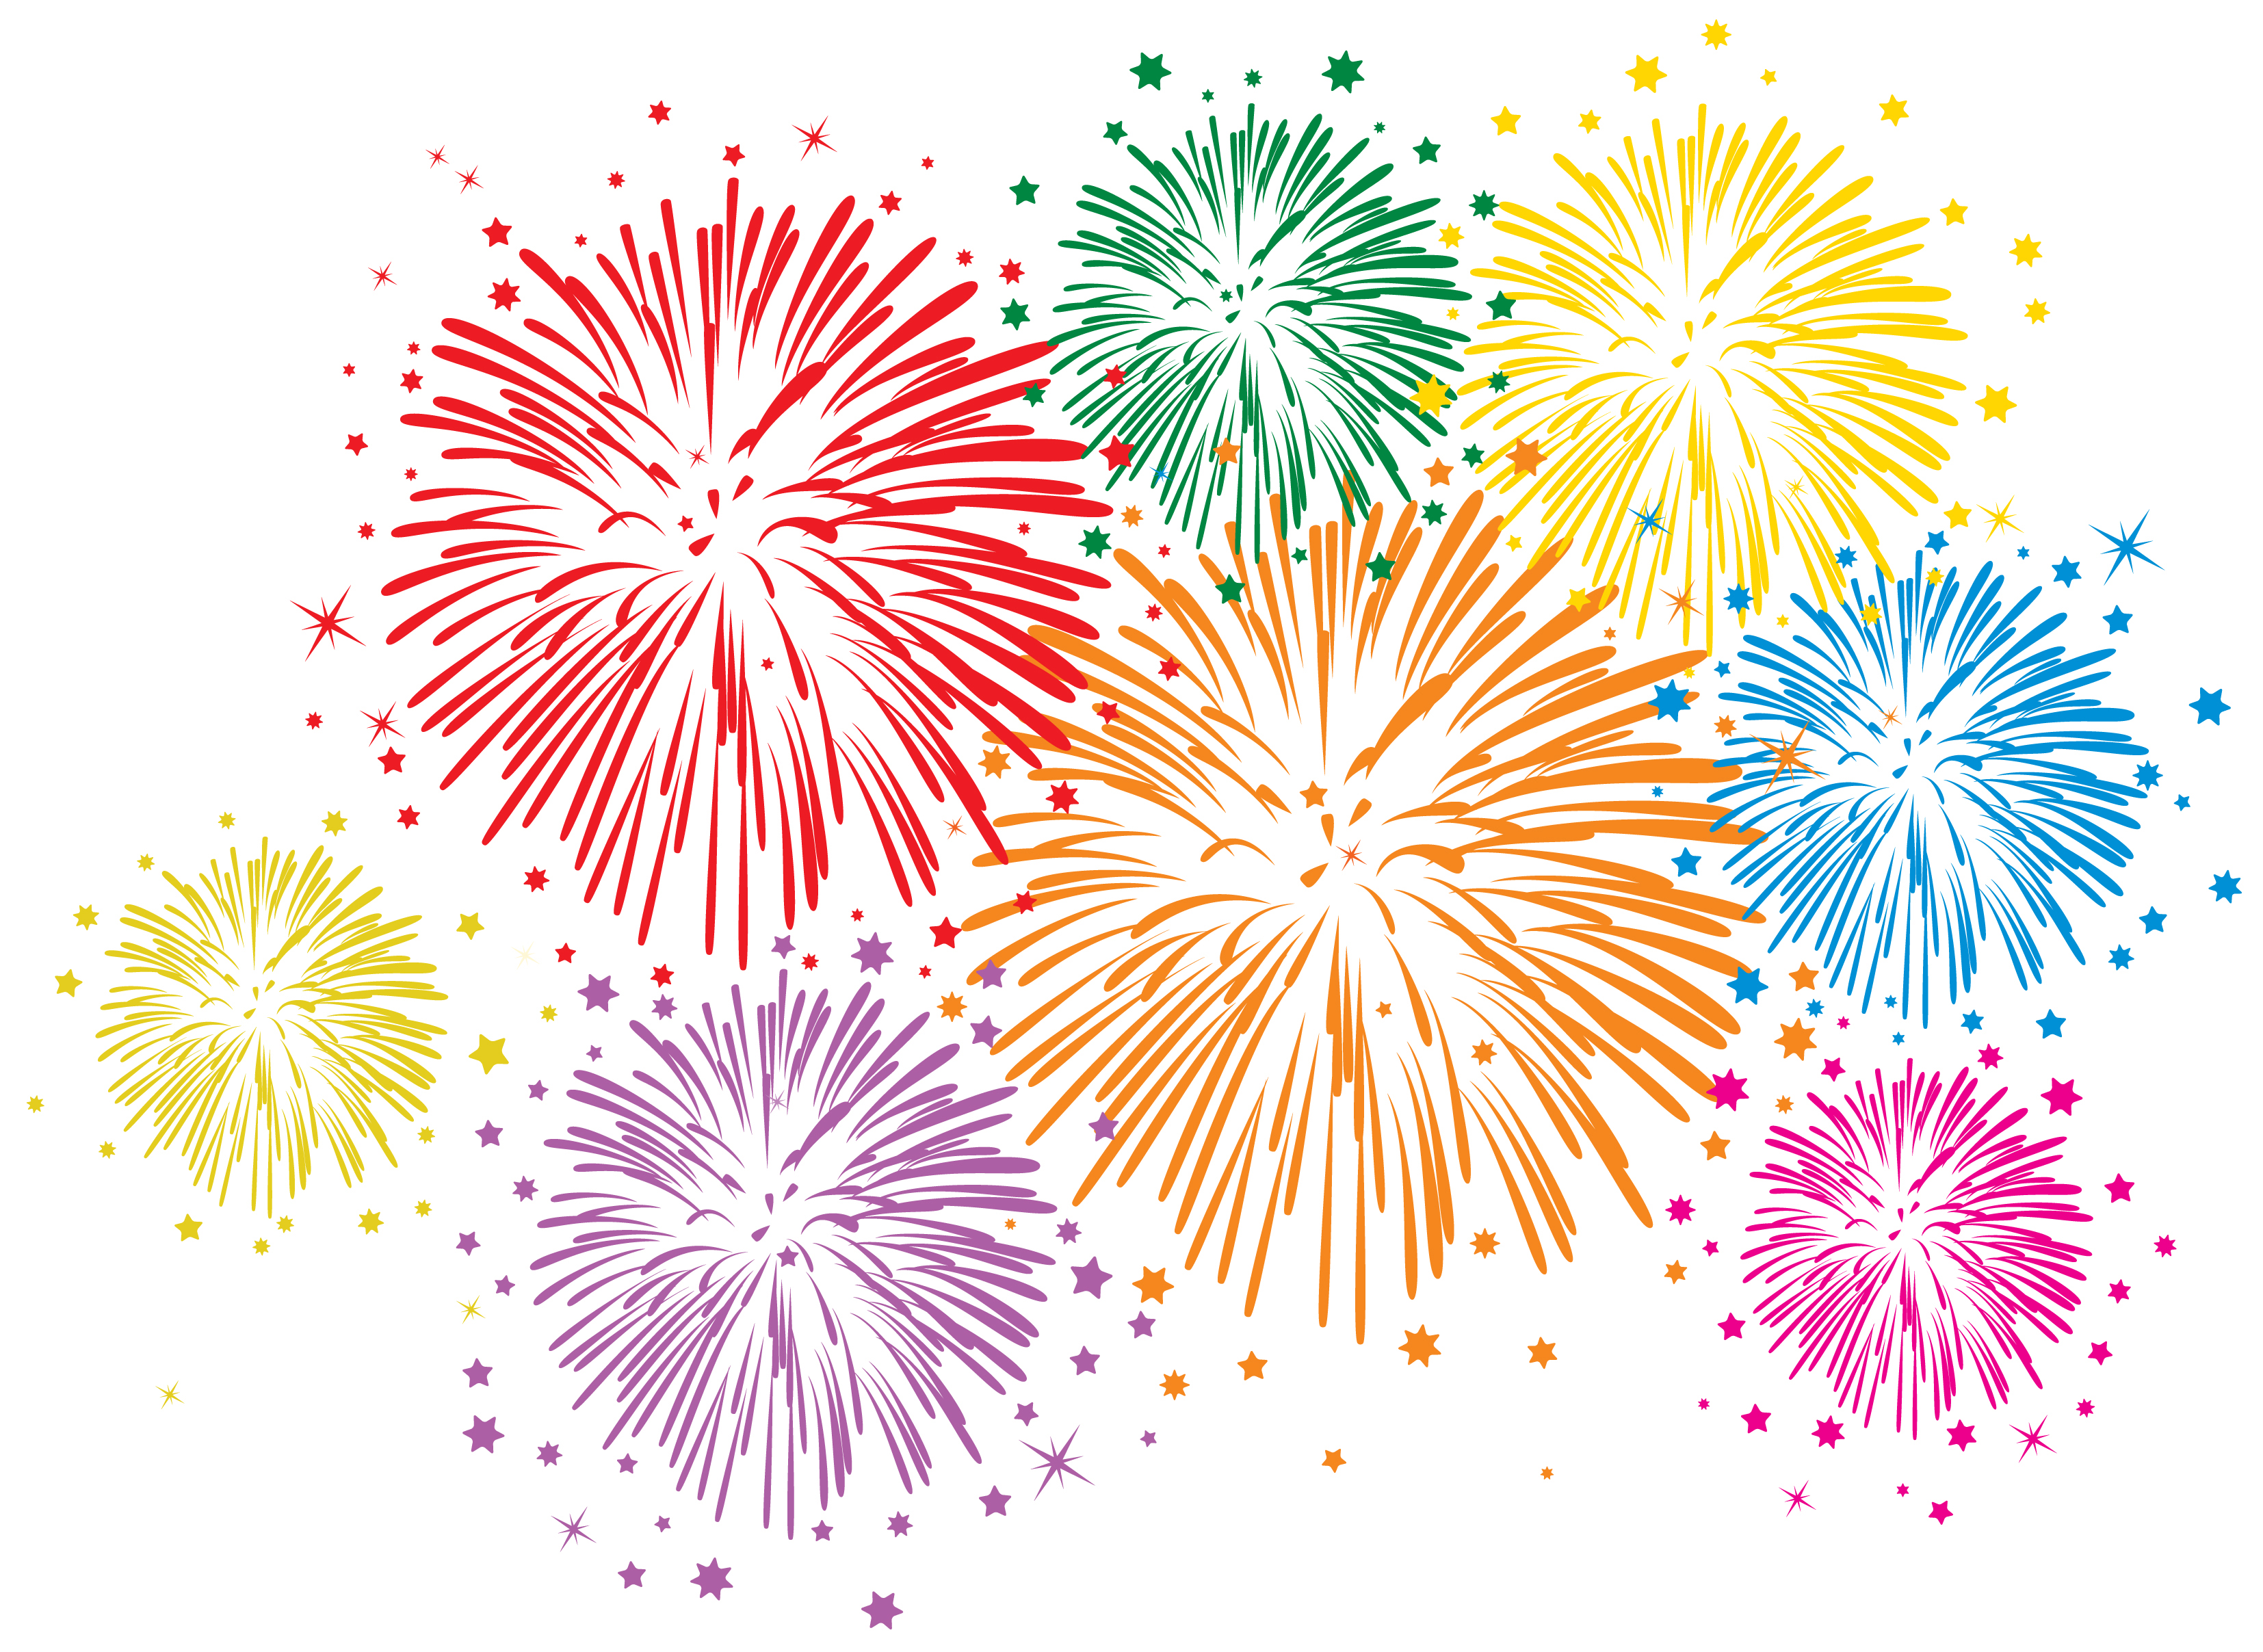 Fireworks clipart #14